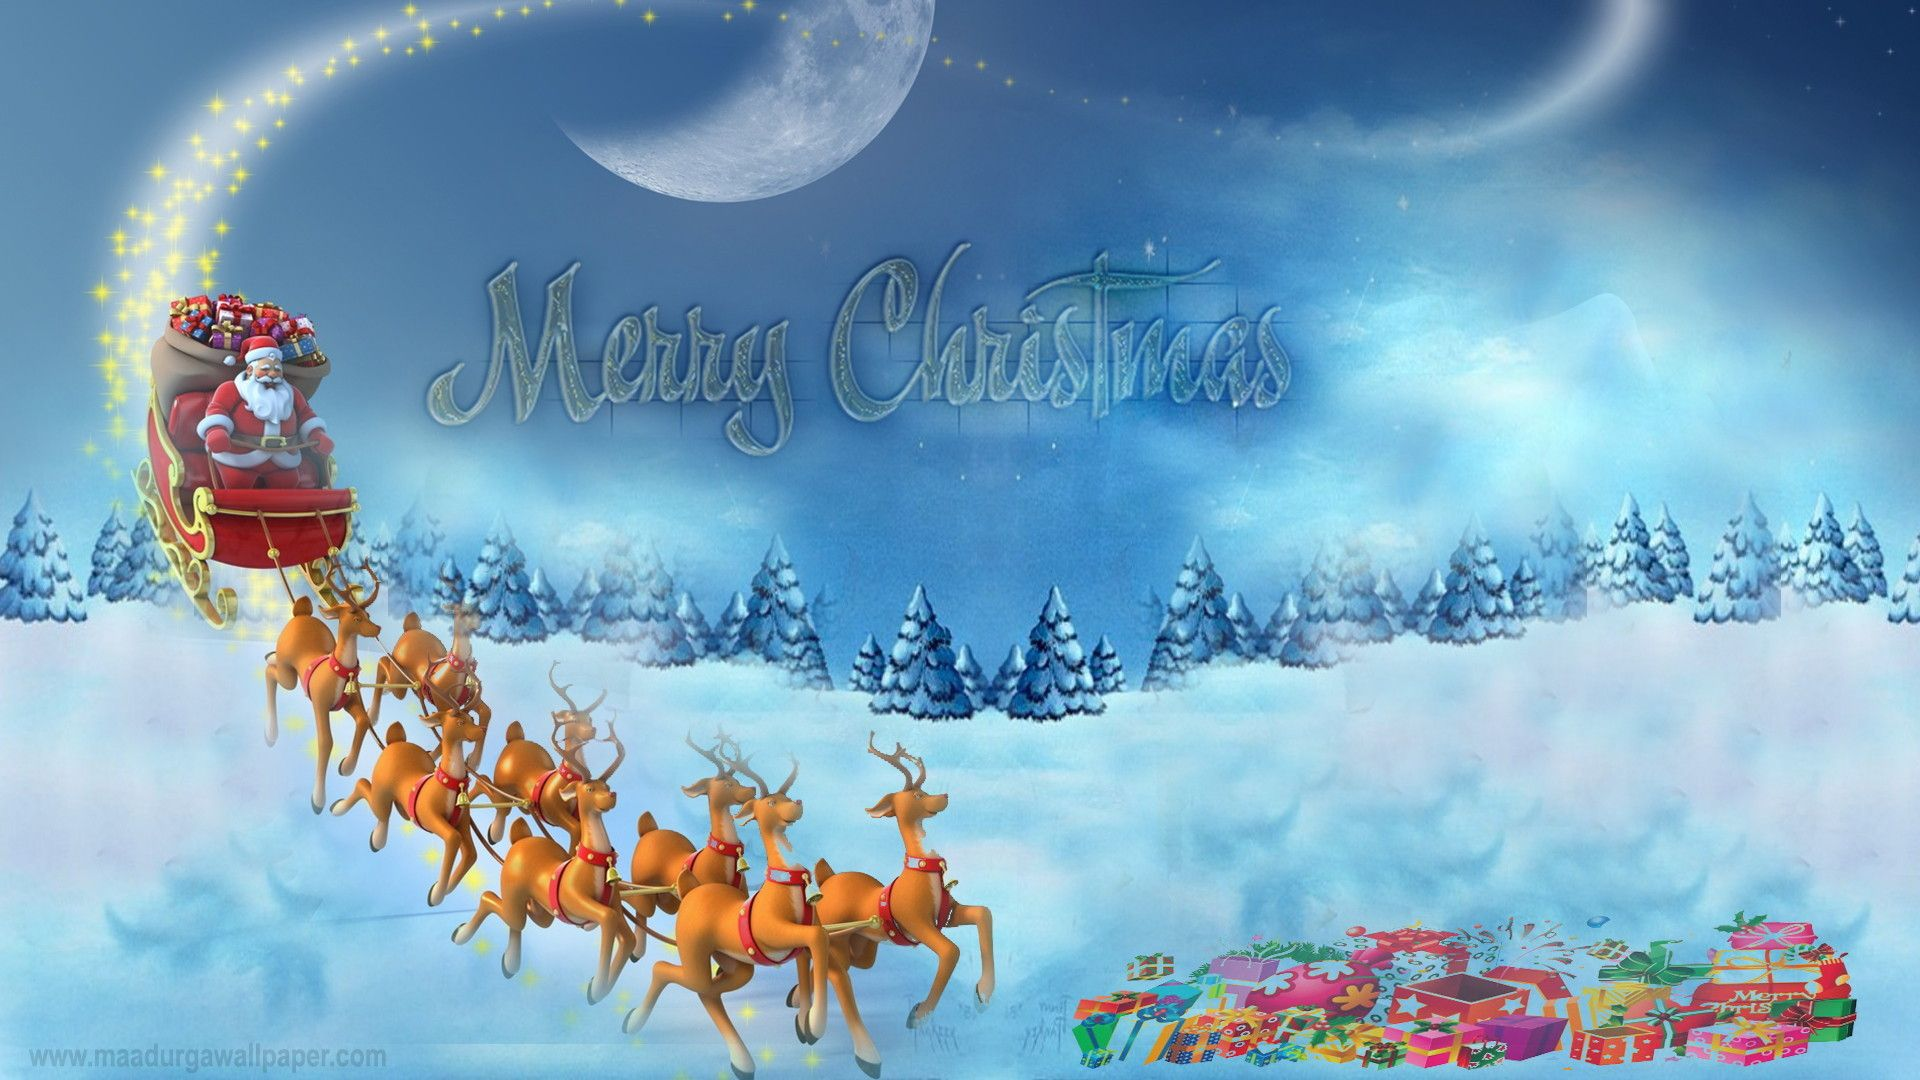 Christmas wallpapers free, beautiful pictures & hd images